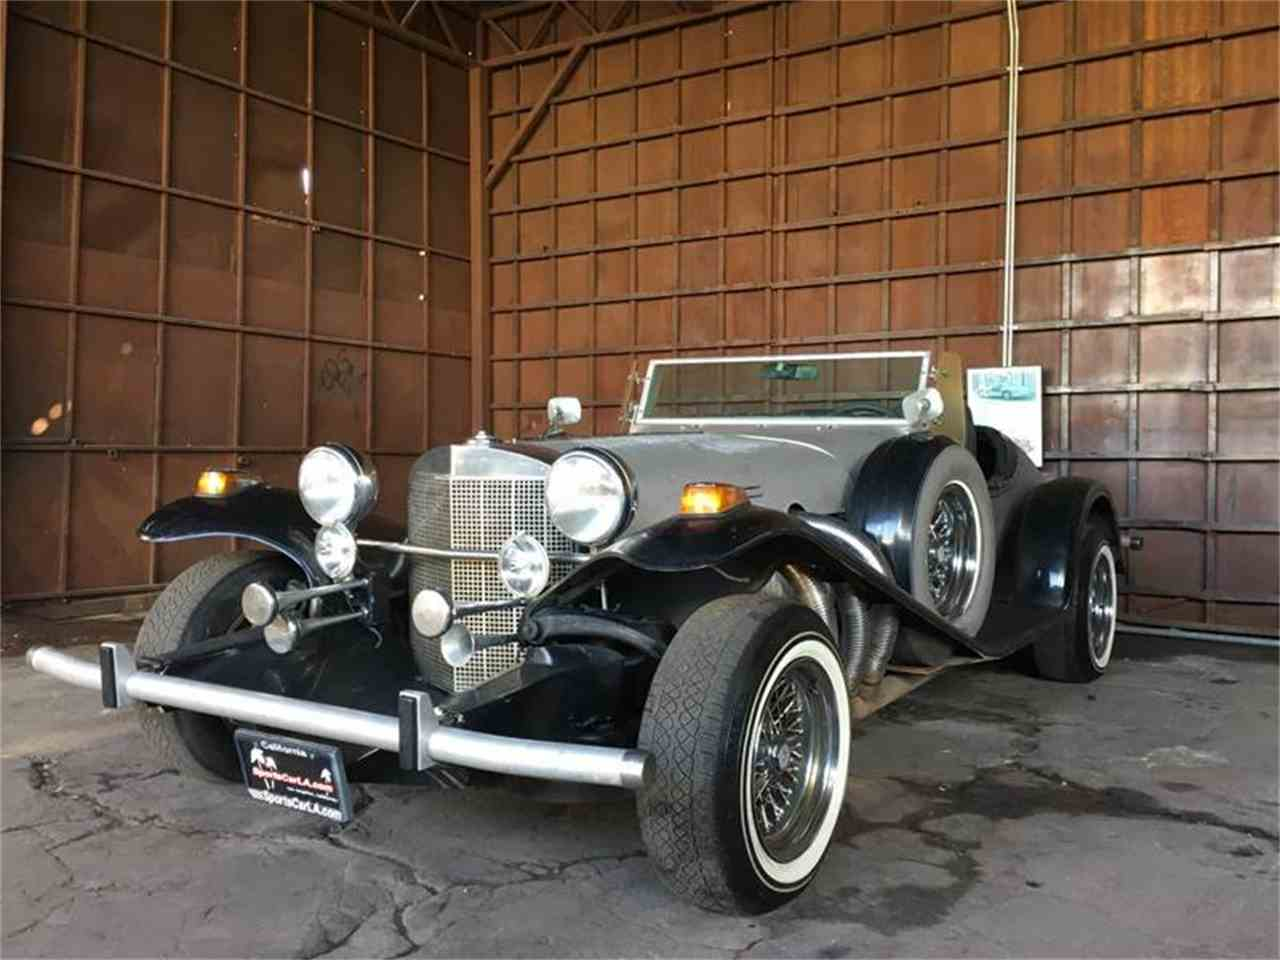 1977 Excalibur Roadster for Sale | ClassicCars.com | CC-1058024